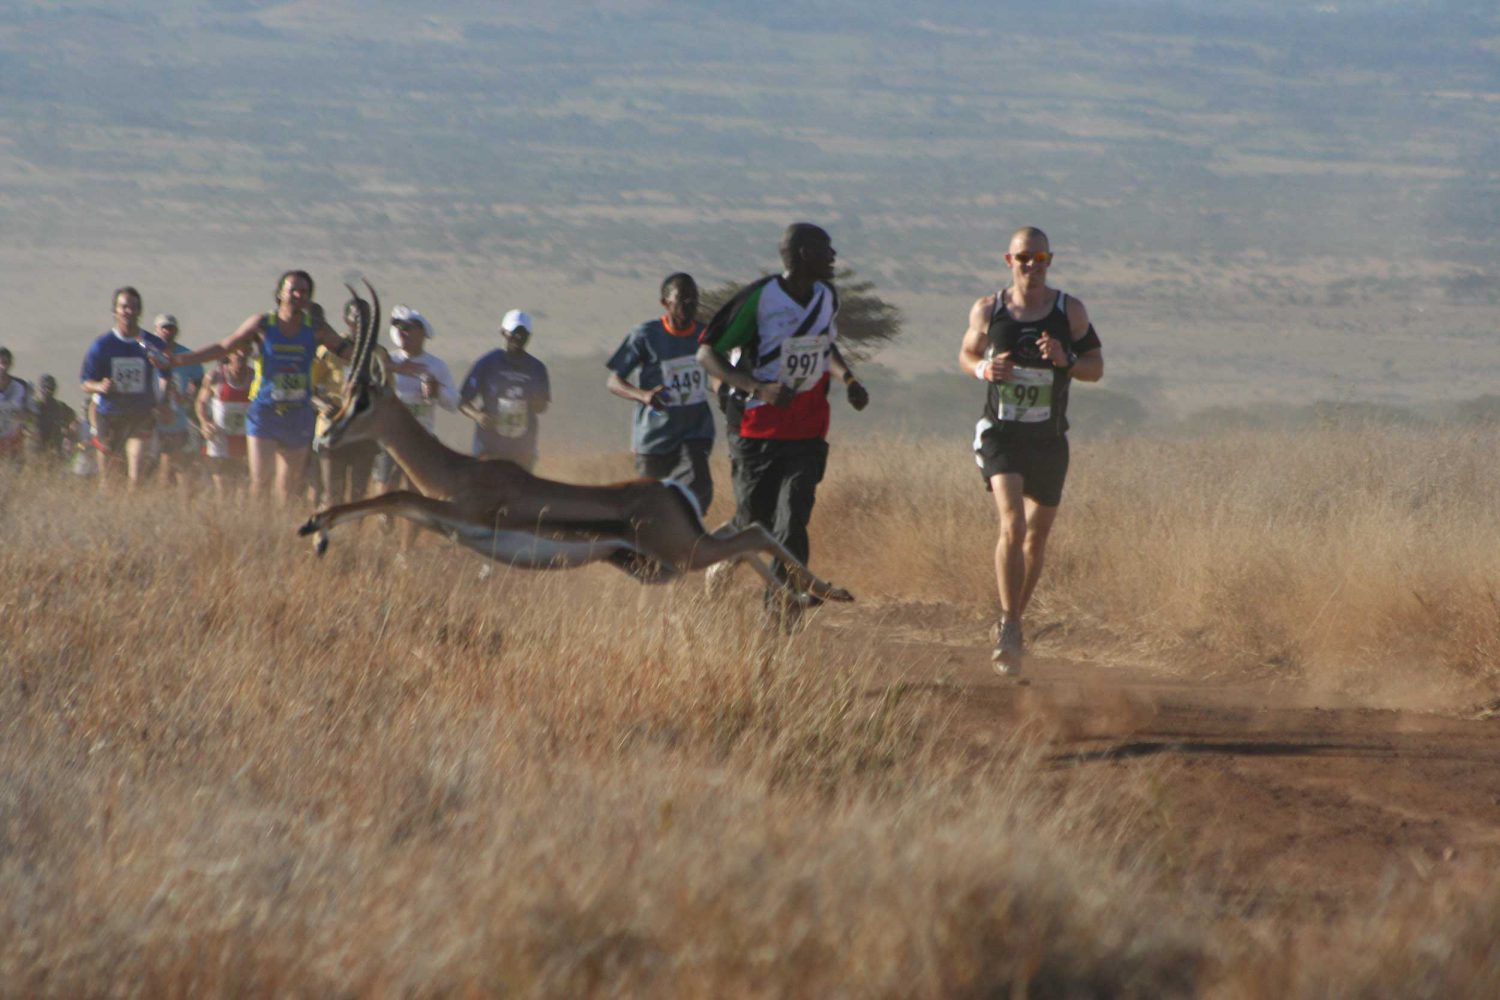 Safaricom Marathon: Run Wild Through Kenya